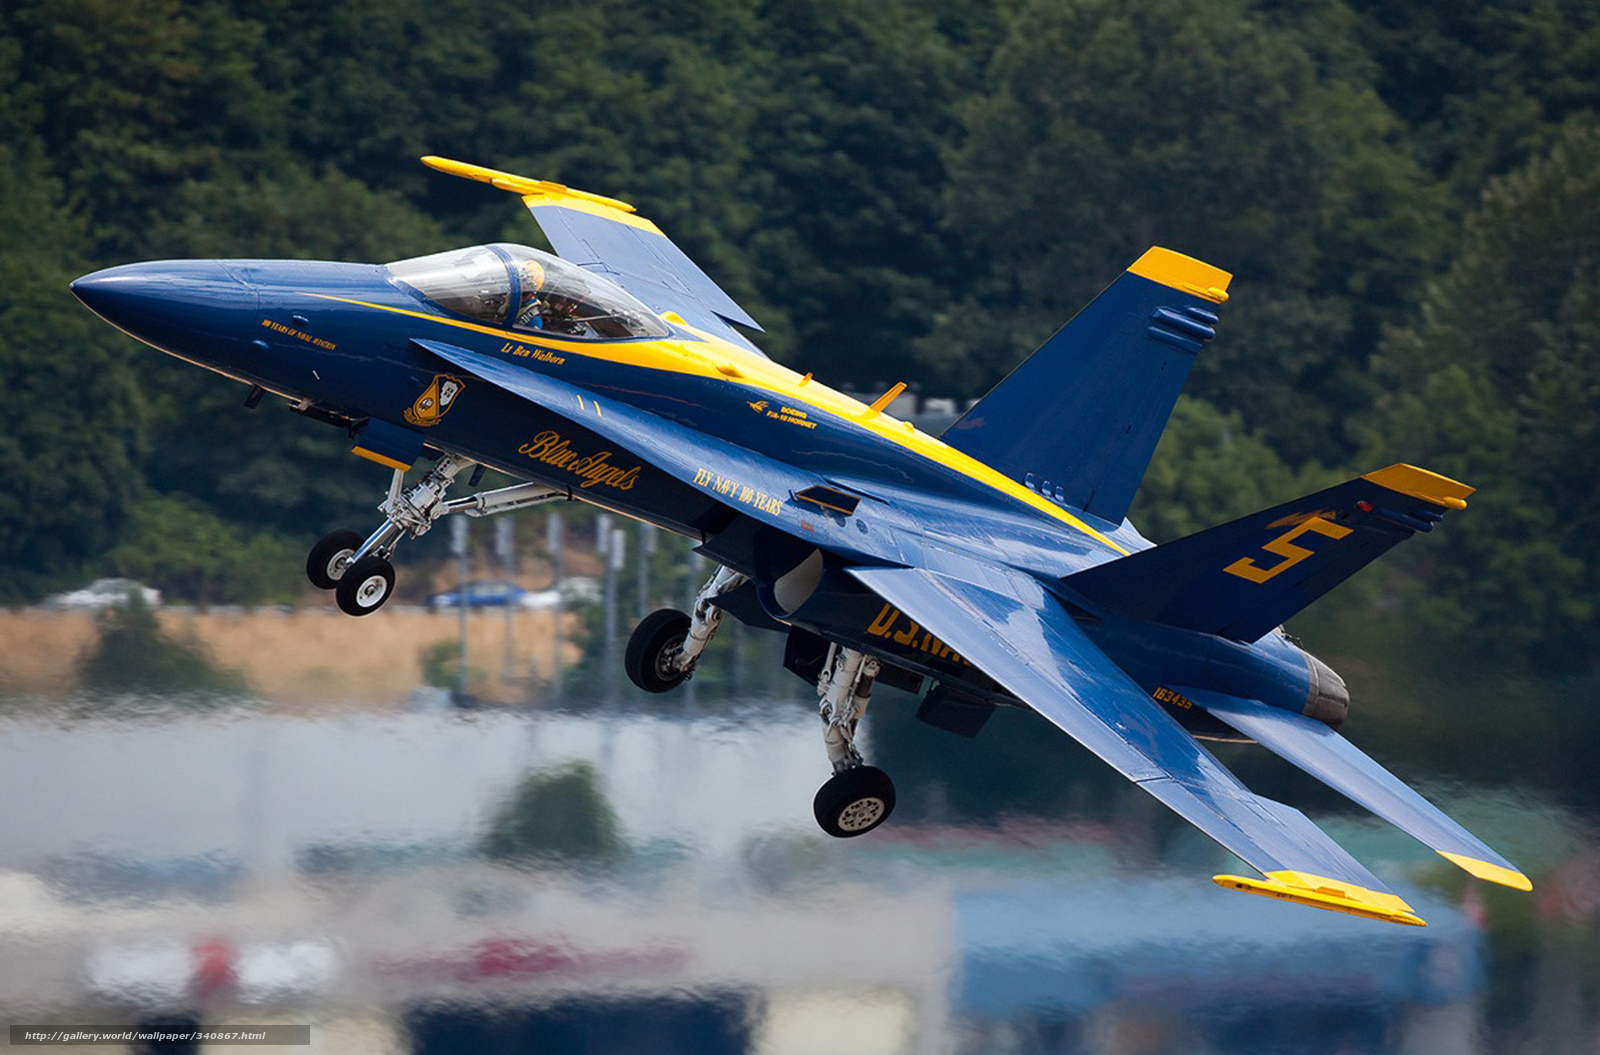 Download wallpaper Blue Angels fighter desktop wallpaper in the 1600x1055